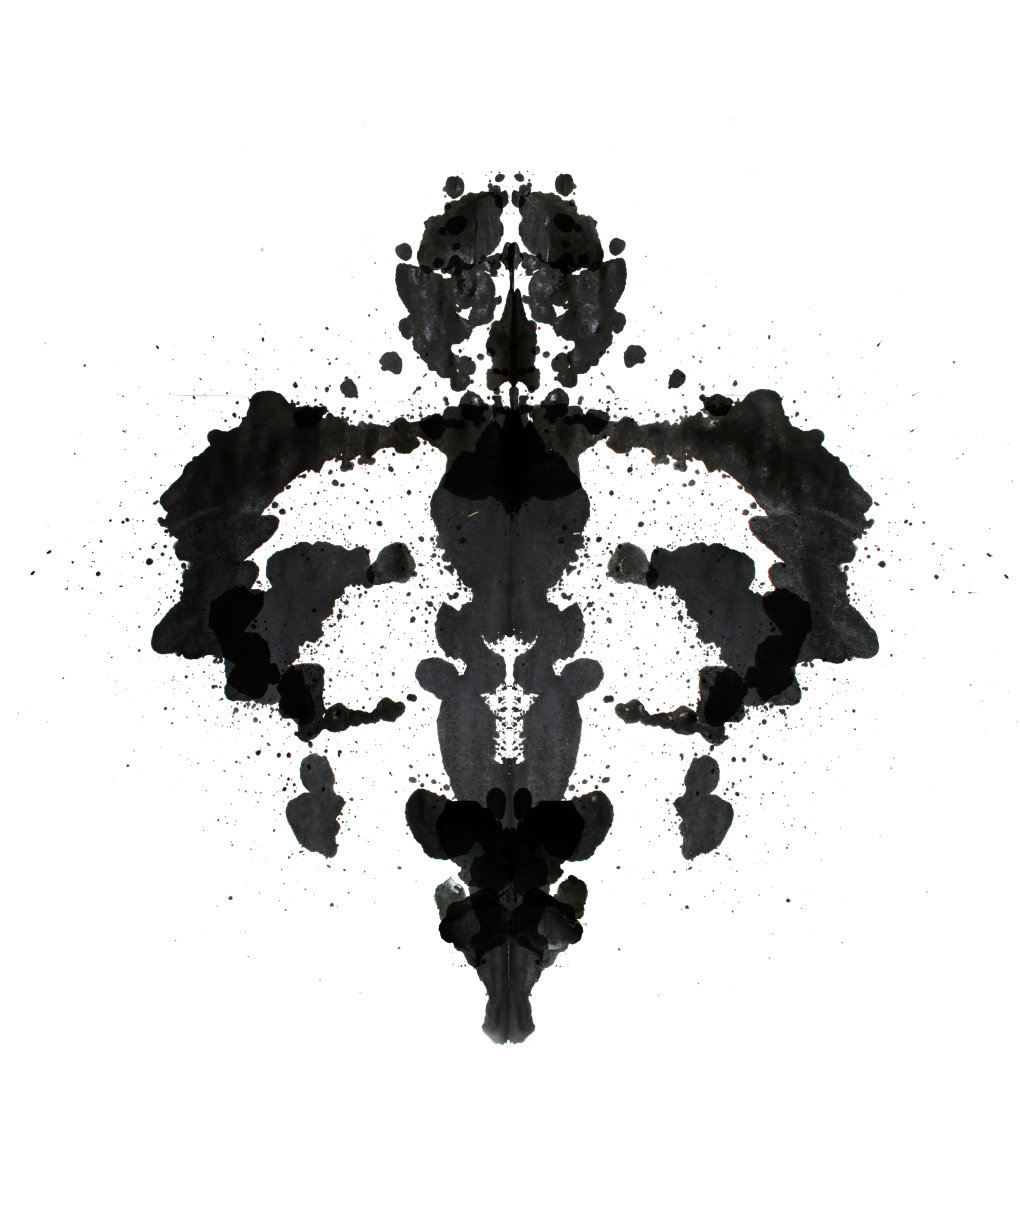 inkblot6 - ink blots